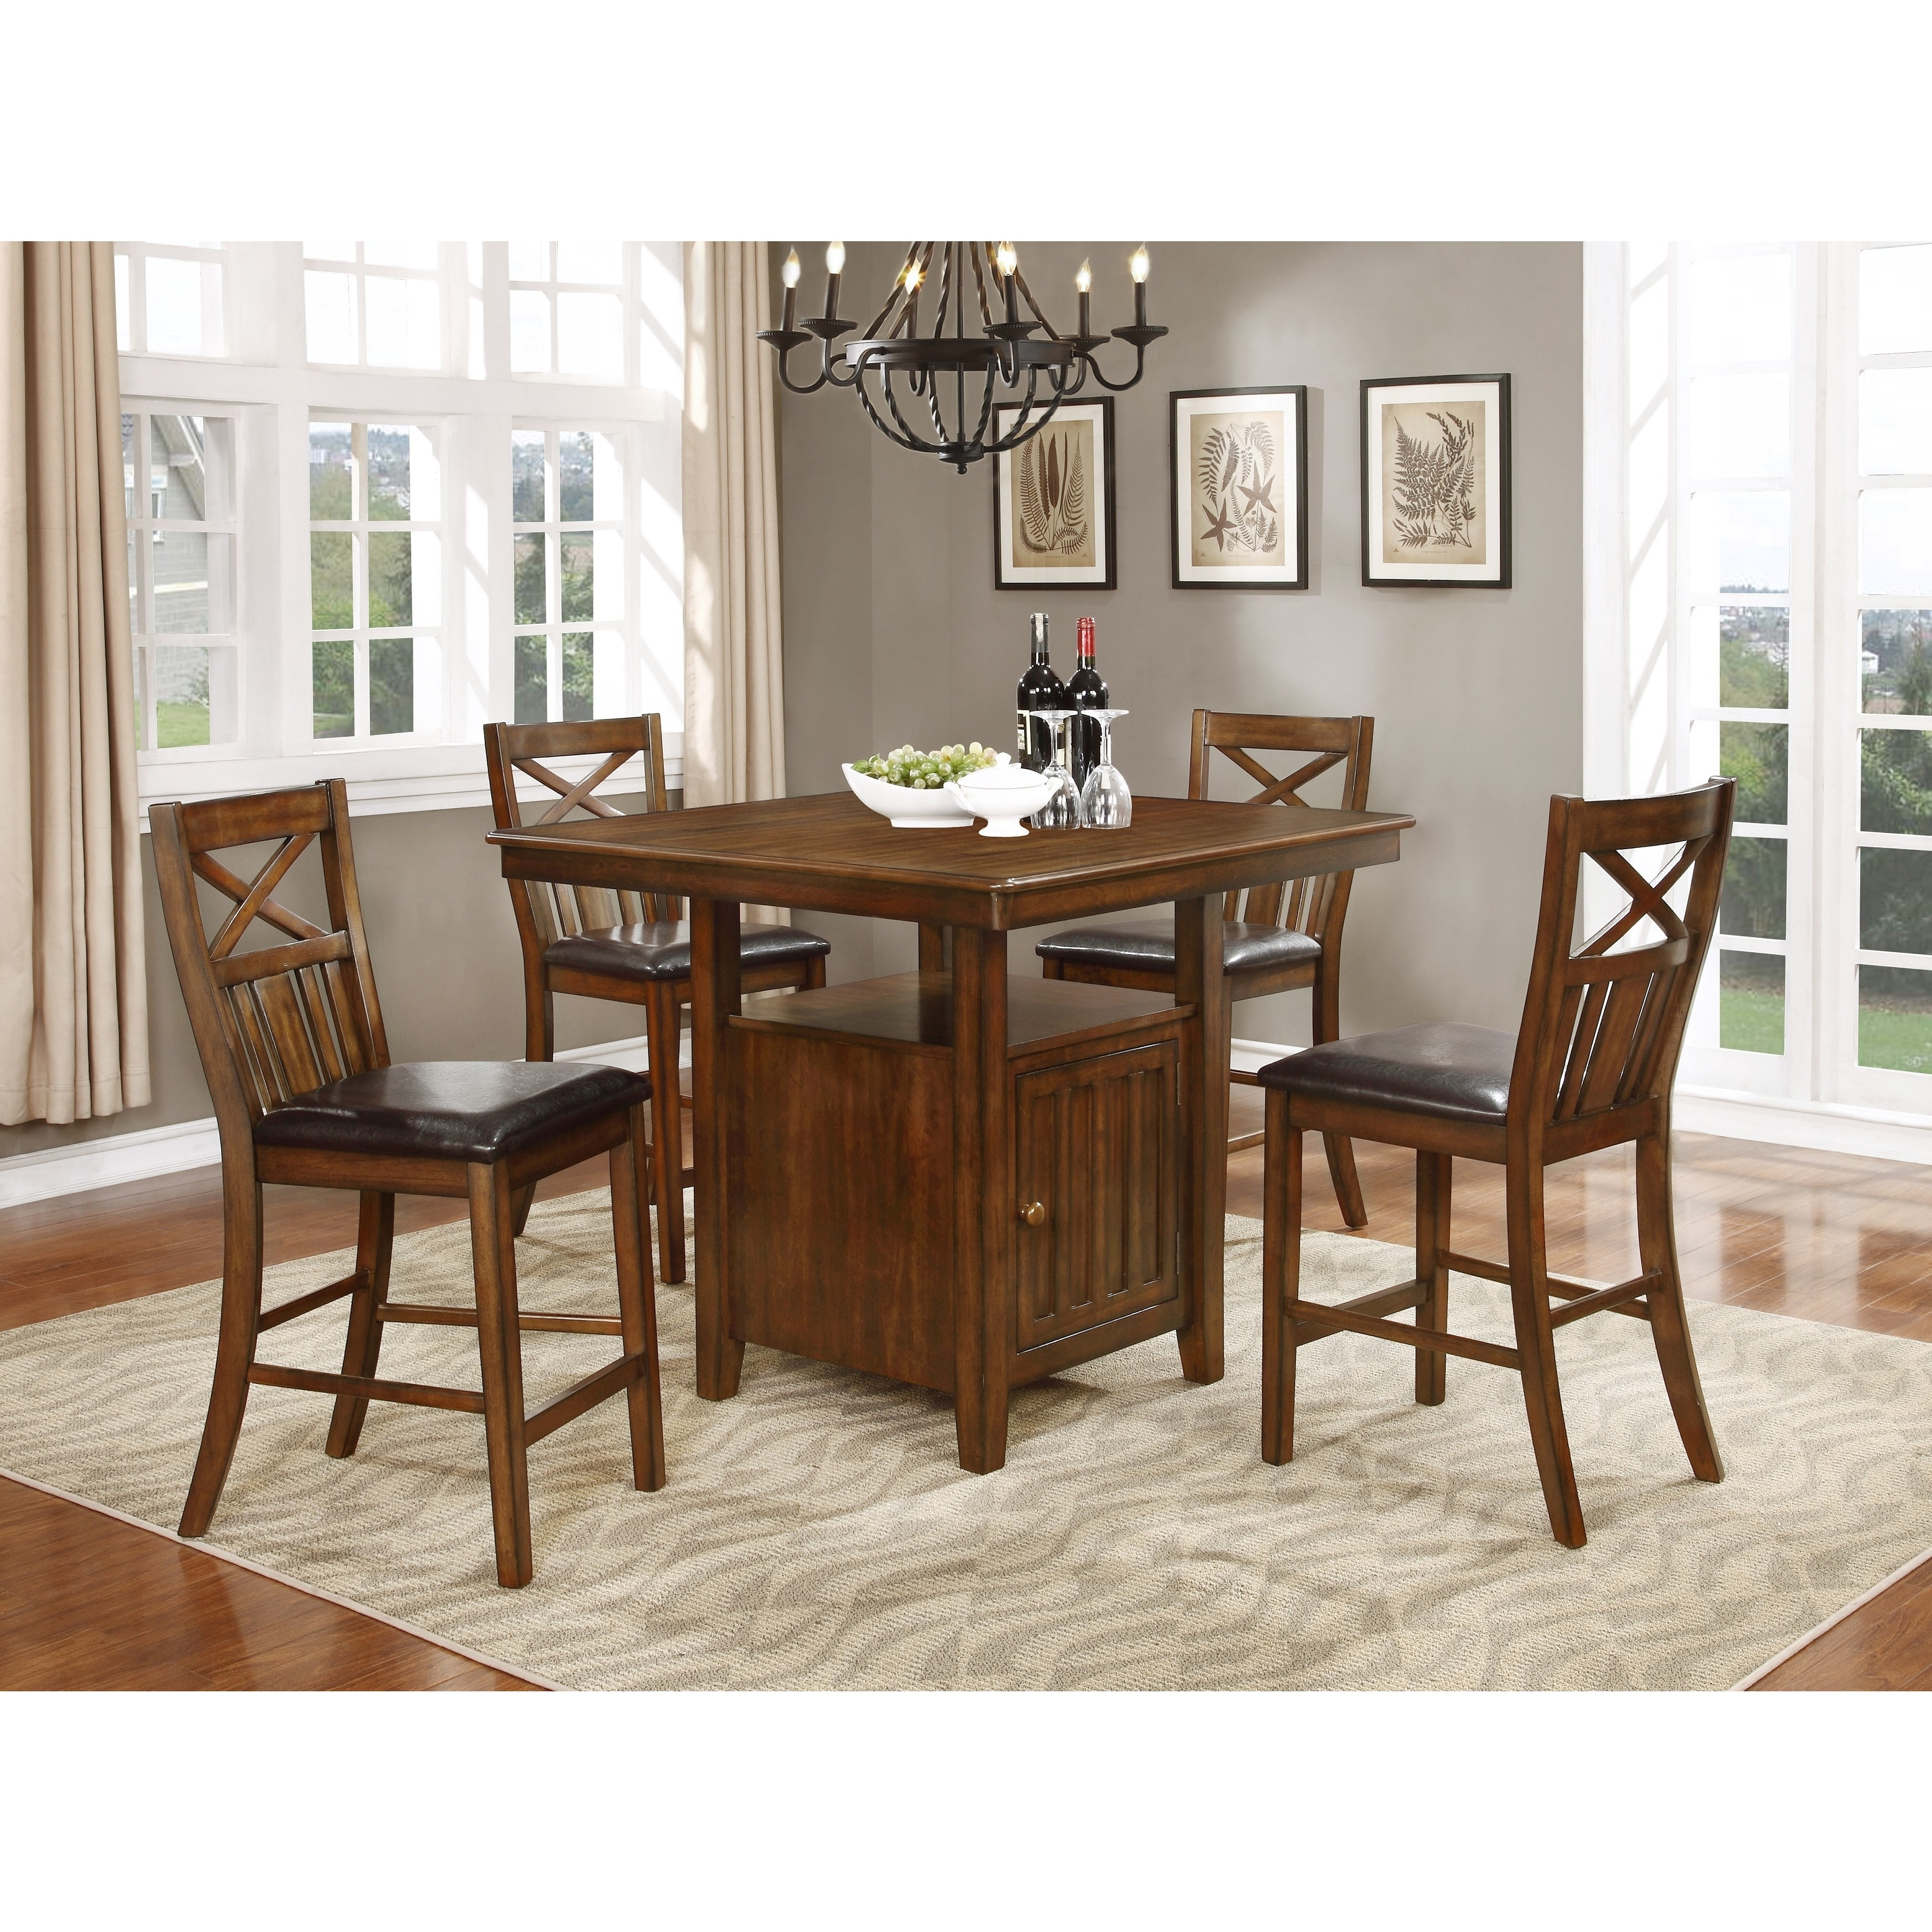 Nathaniel Home Bryson Collection Brown Wood Counter-heigh...